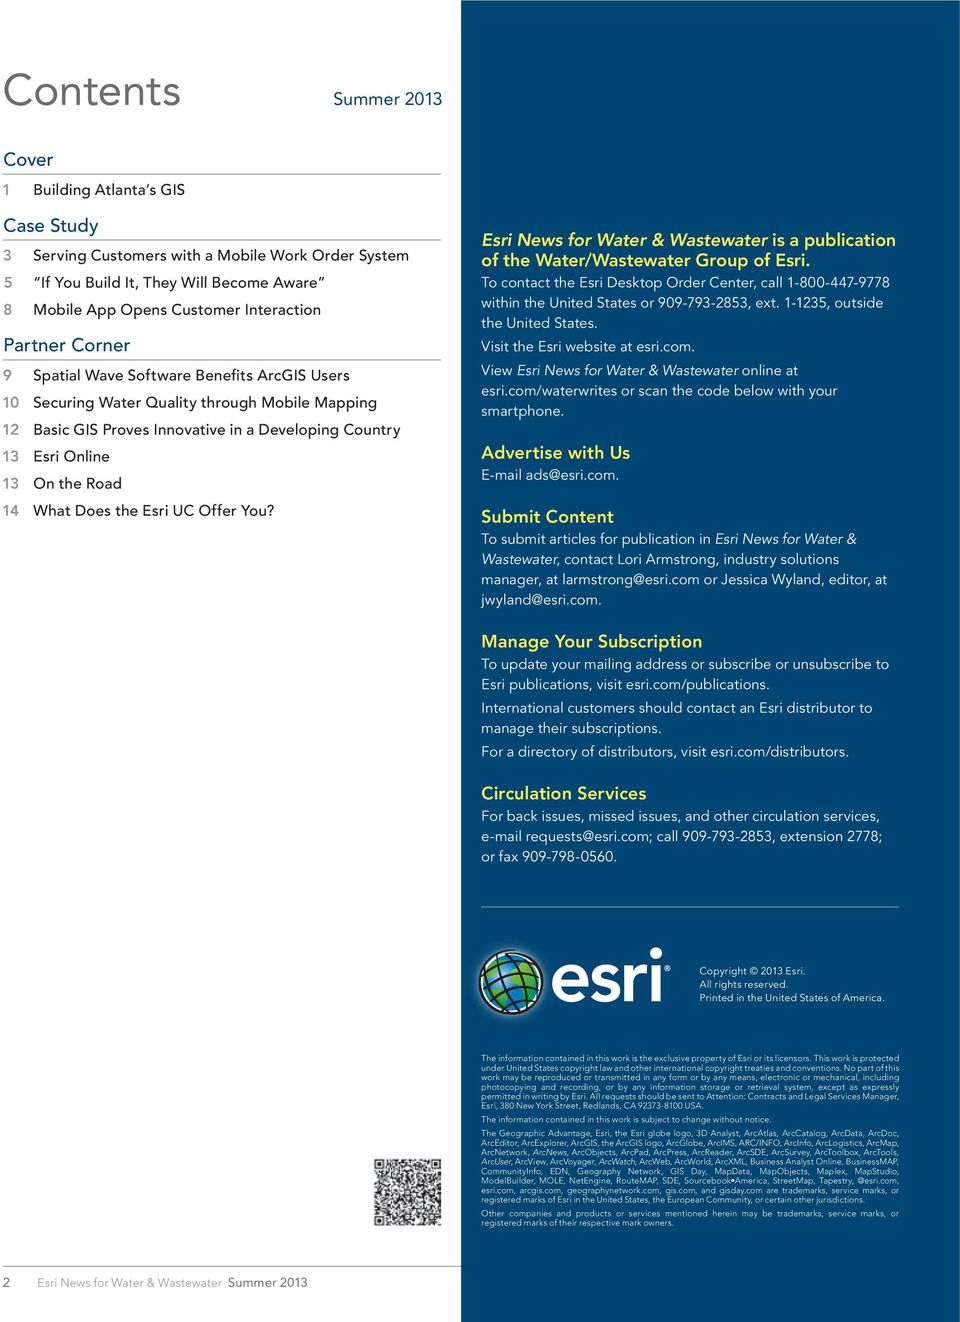 What Does the Esri UC Offer You? Esri News for Water & Wastewater is a publication of the Water/Wastewater Group of Esri.